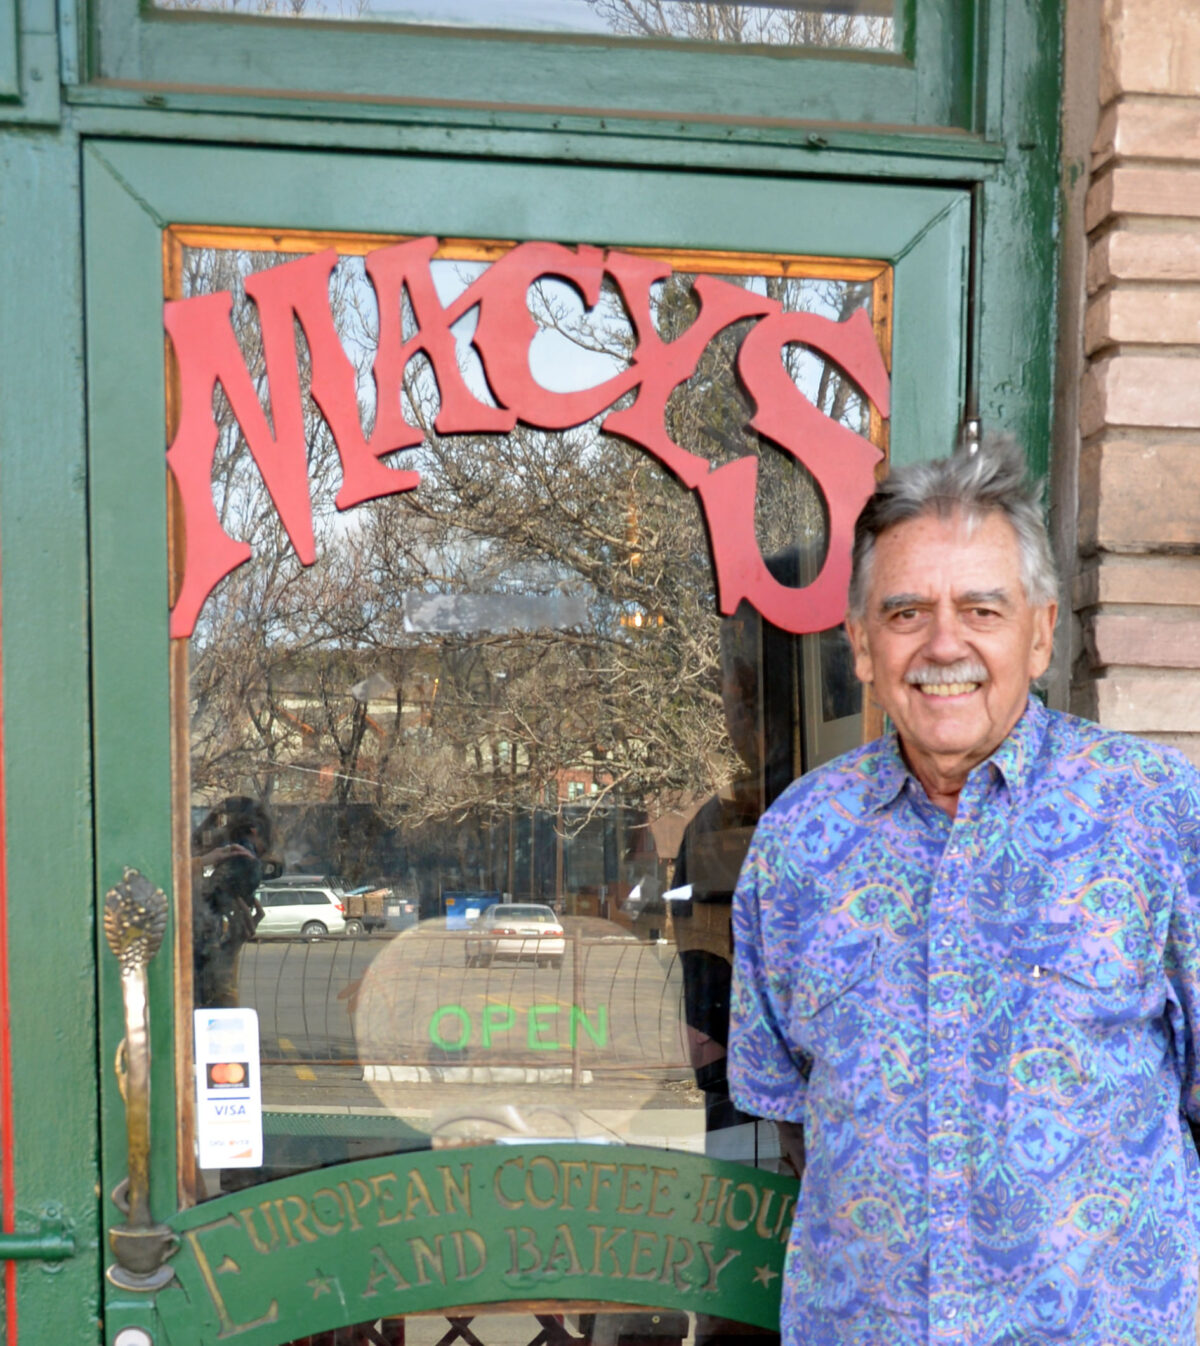 The ultimate cup: Macy's European Coffee House and Bakery celebrates 40 years in Flagstaff